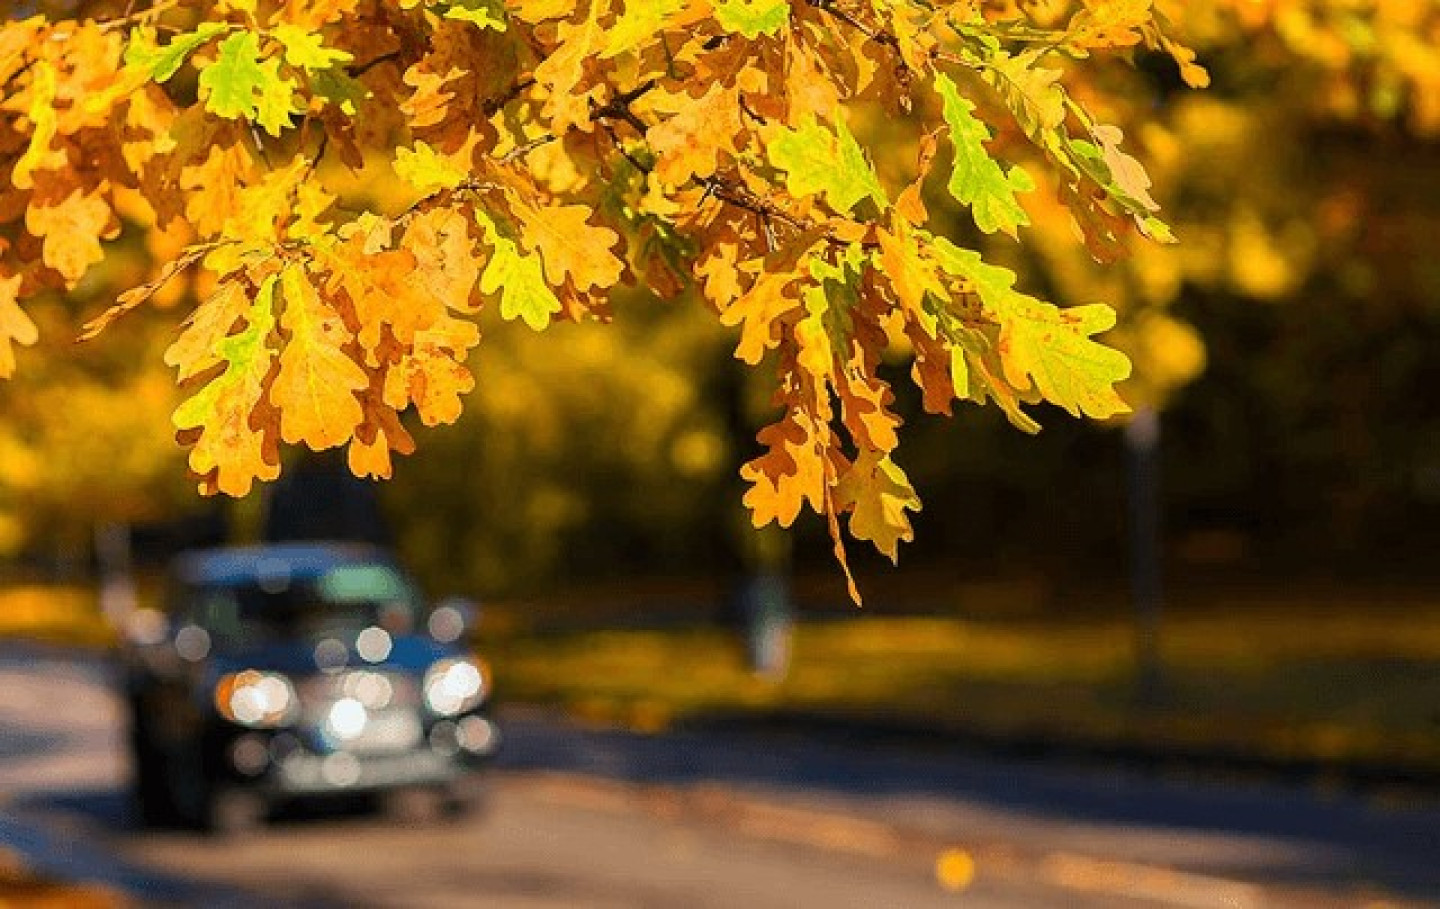 5 of the Best Places to View Leaves this Fall